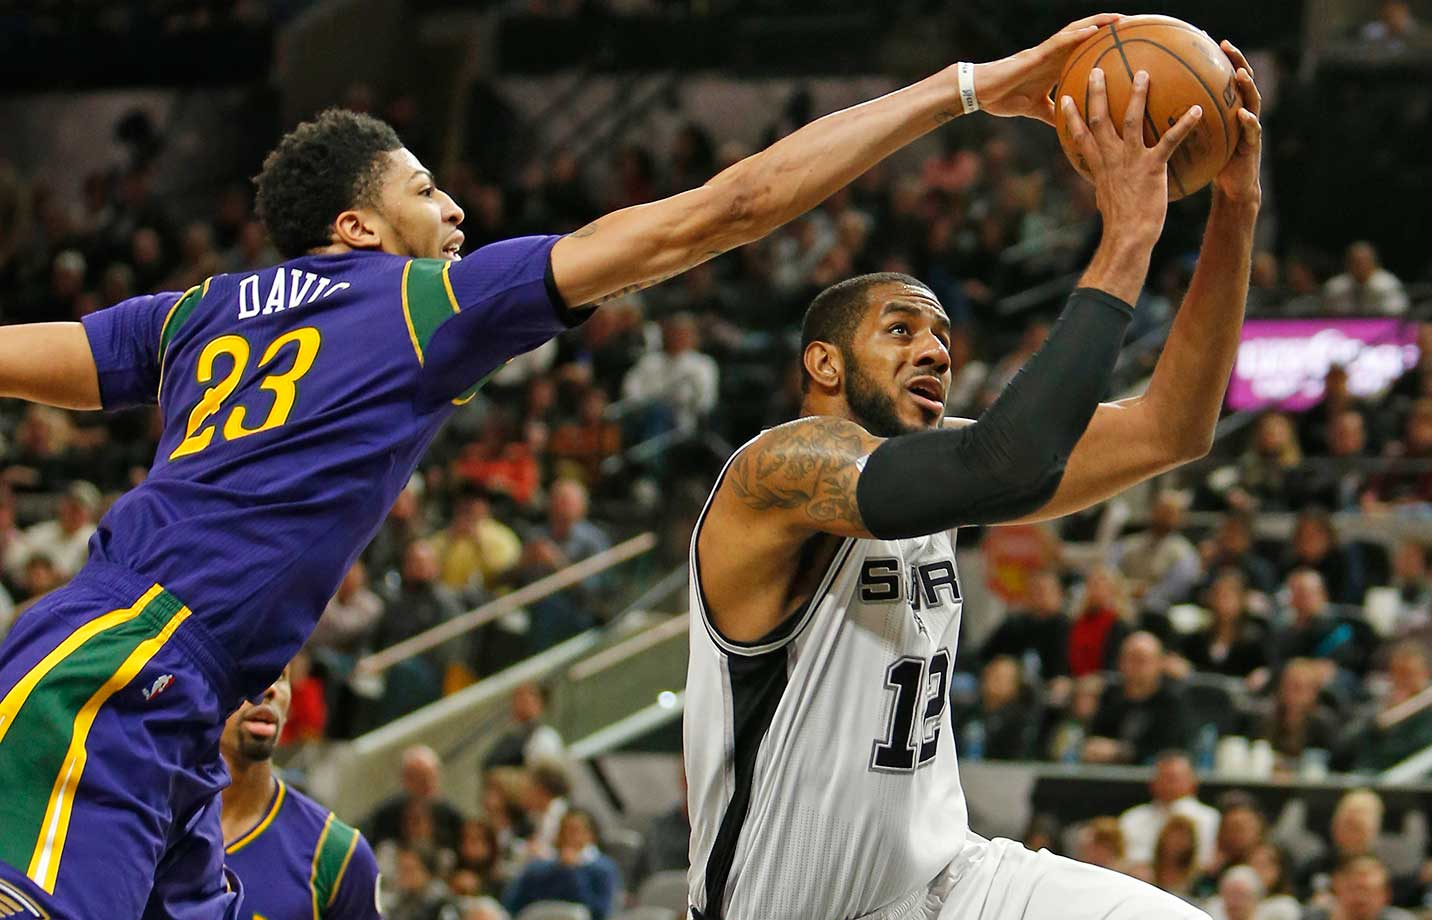 LaMarcus Aldridge of the San Antonio Spurs drives past Anthony Davis of the New Orleans Pelicans at AT&T Center in San Antonio.